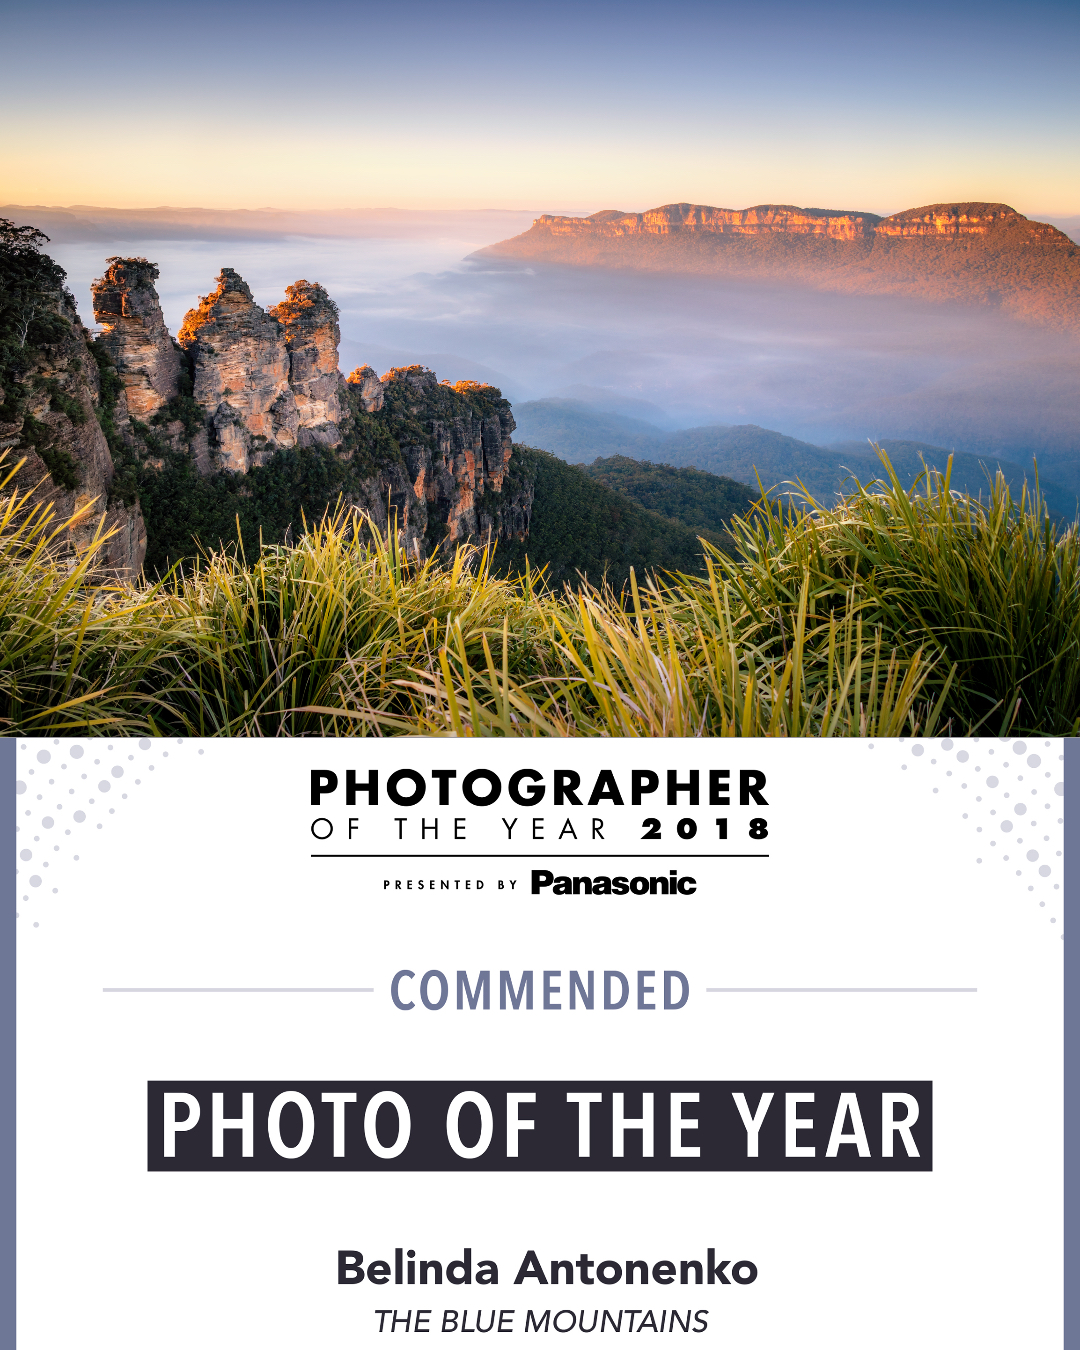 Photography - Photographer Of The Year Award - The Blue Mountains